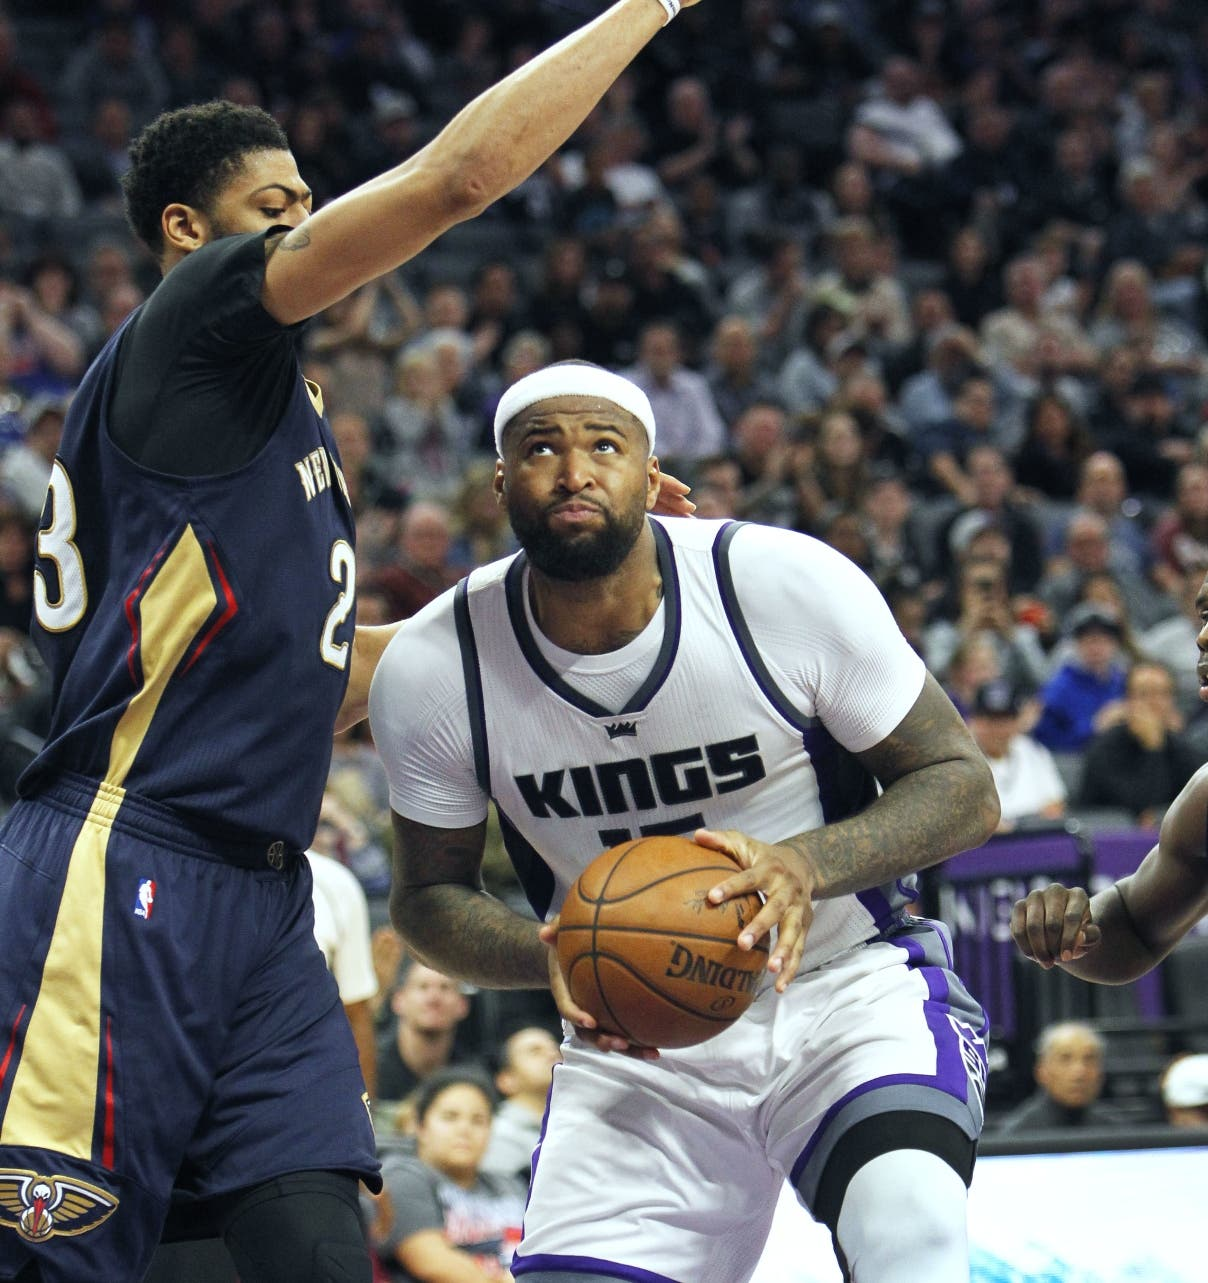 Sacramento Kings center DeMarcus Cousins (15) battles for position under the basket against New Orleans Pelicans defender Anthony Davis (23) during the second half of an NBA basketball game in Sacramento, Calif., Sunday, Feb. 12, 2017. The Kings won 105-99. (AP Photo/Steve Yeater)